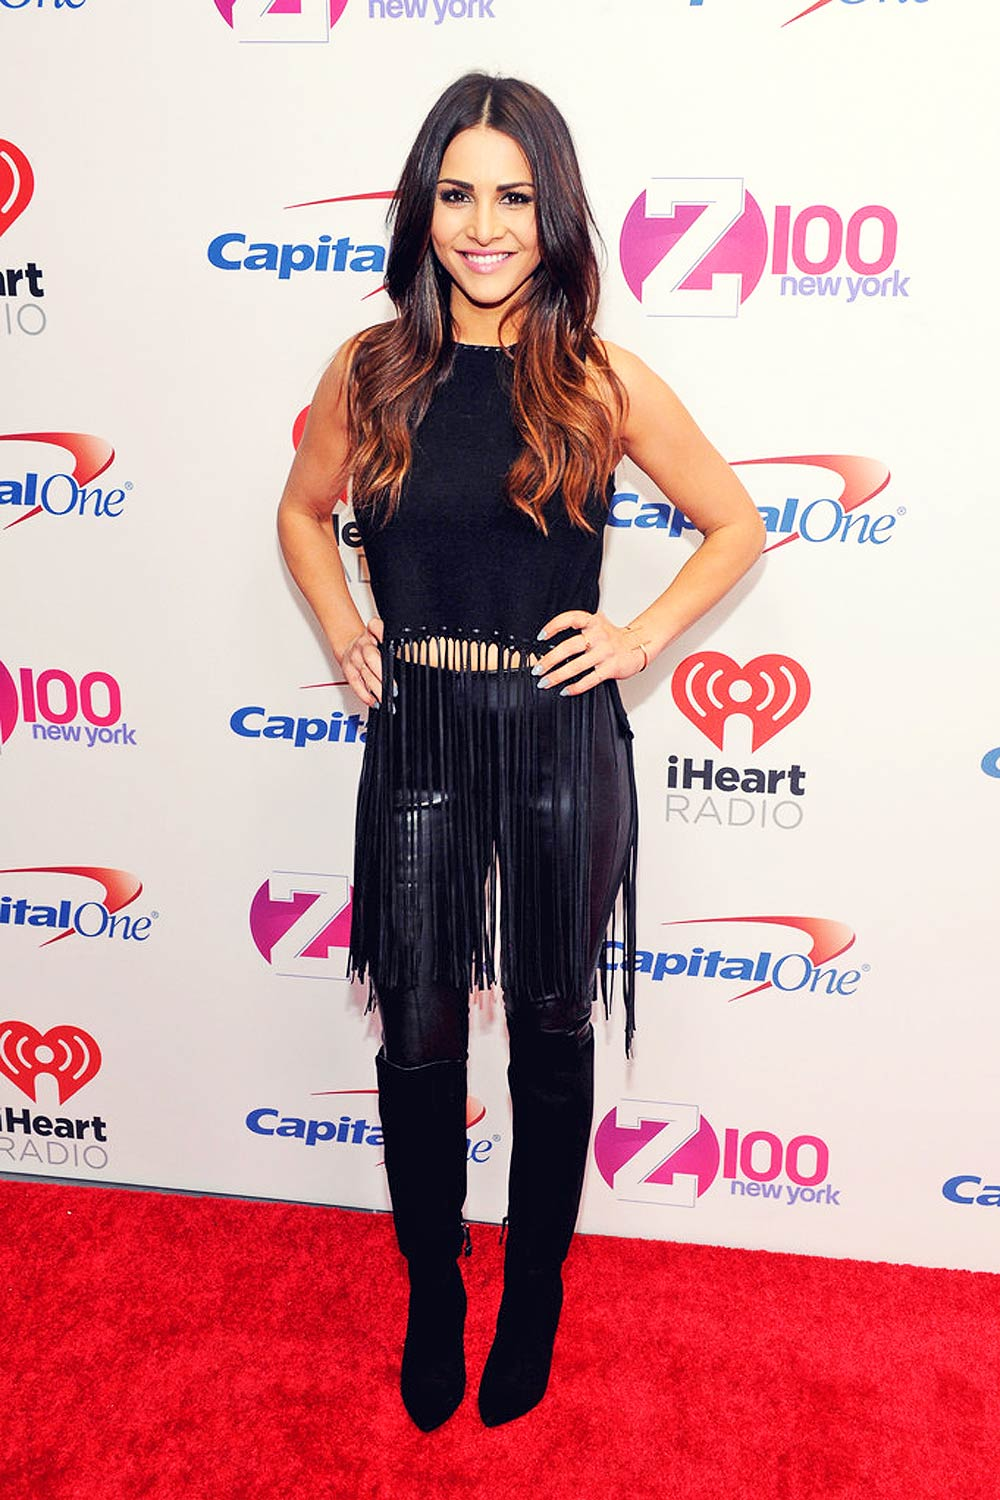 Andi Dorfman attends Z100's Jingle Ball 2015